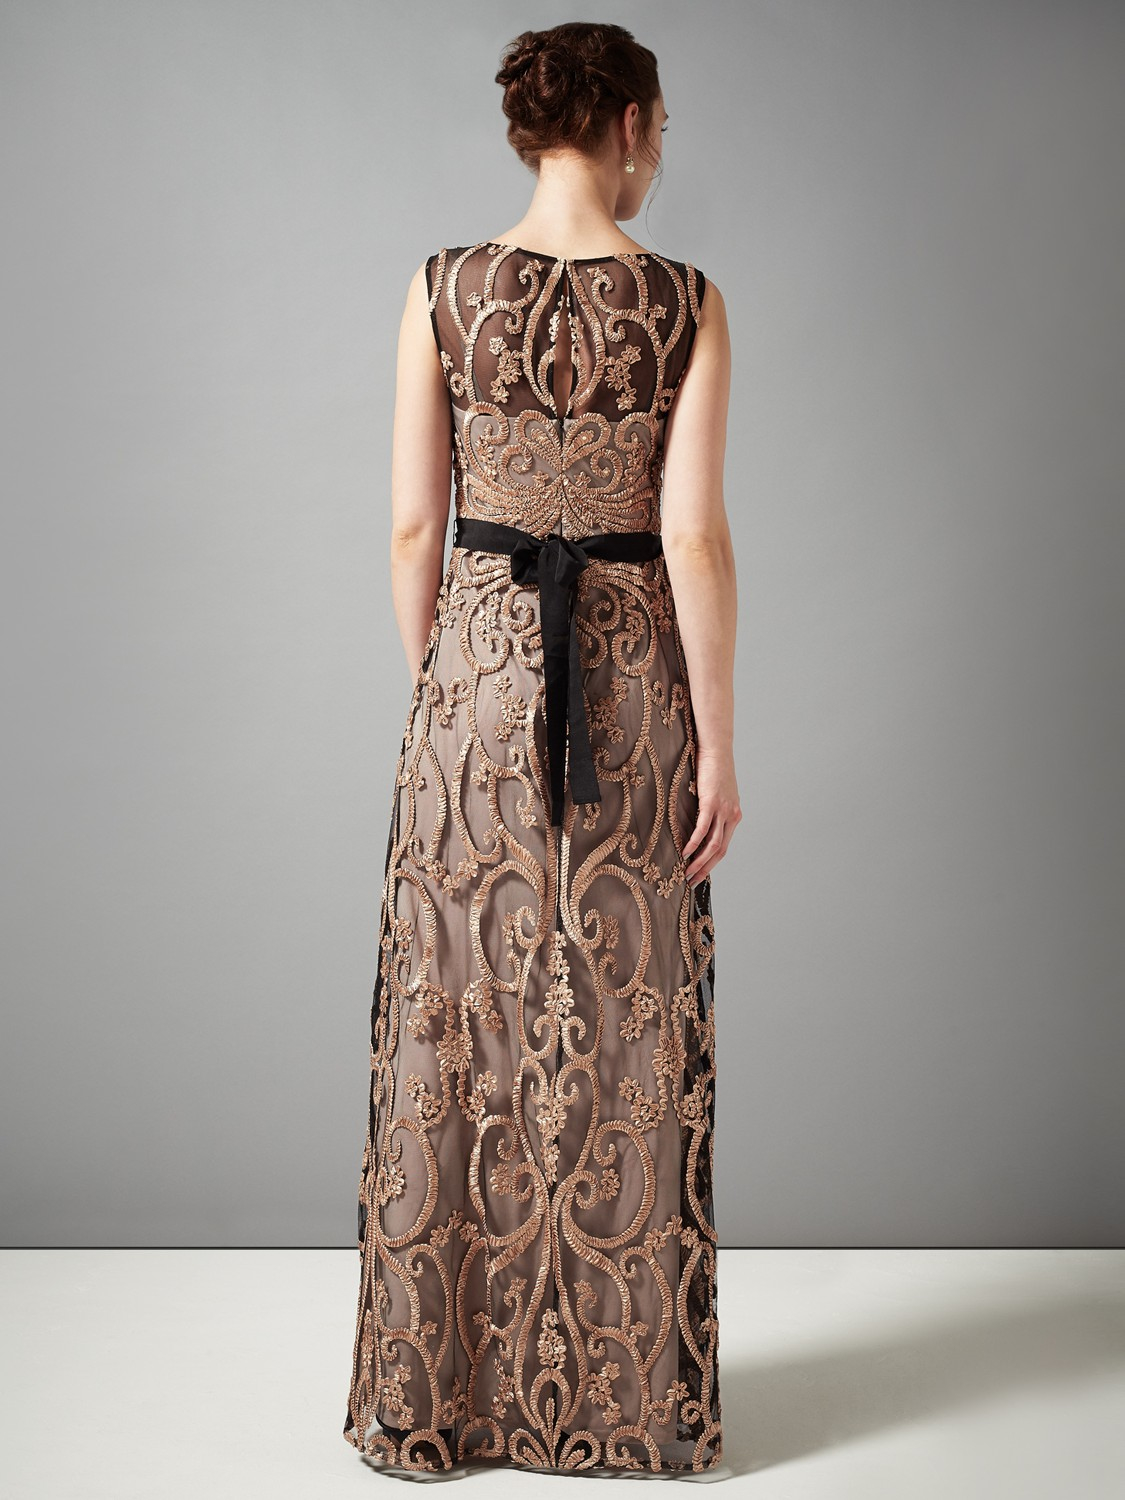 Phase Eight Concerto Dress in Metallic - Lyst